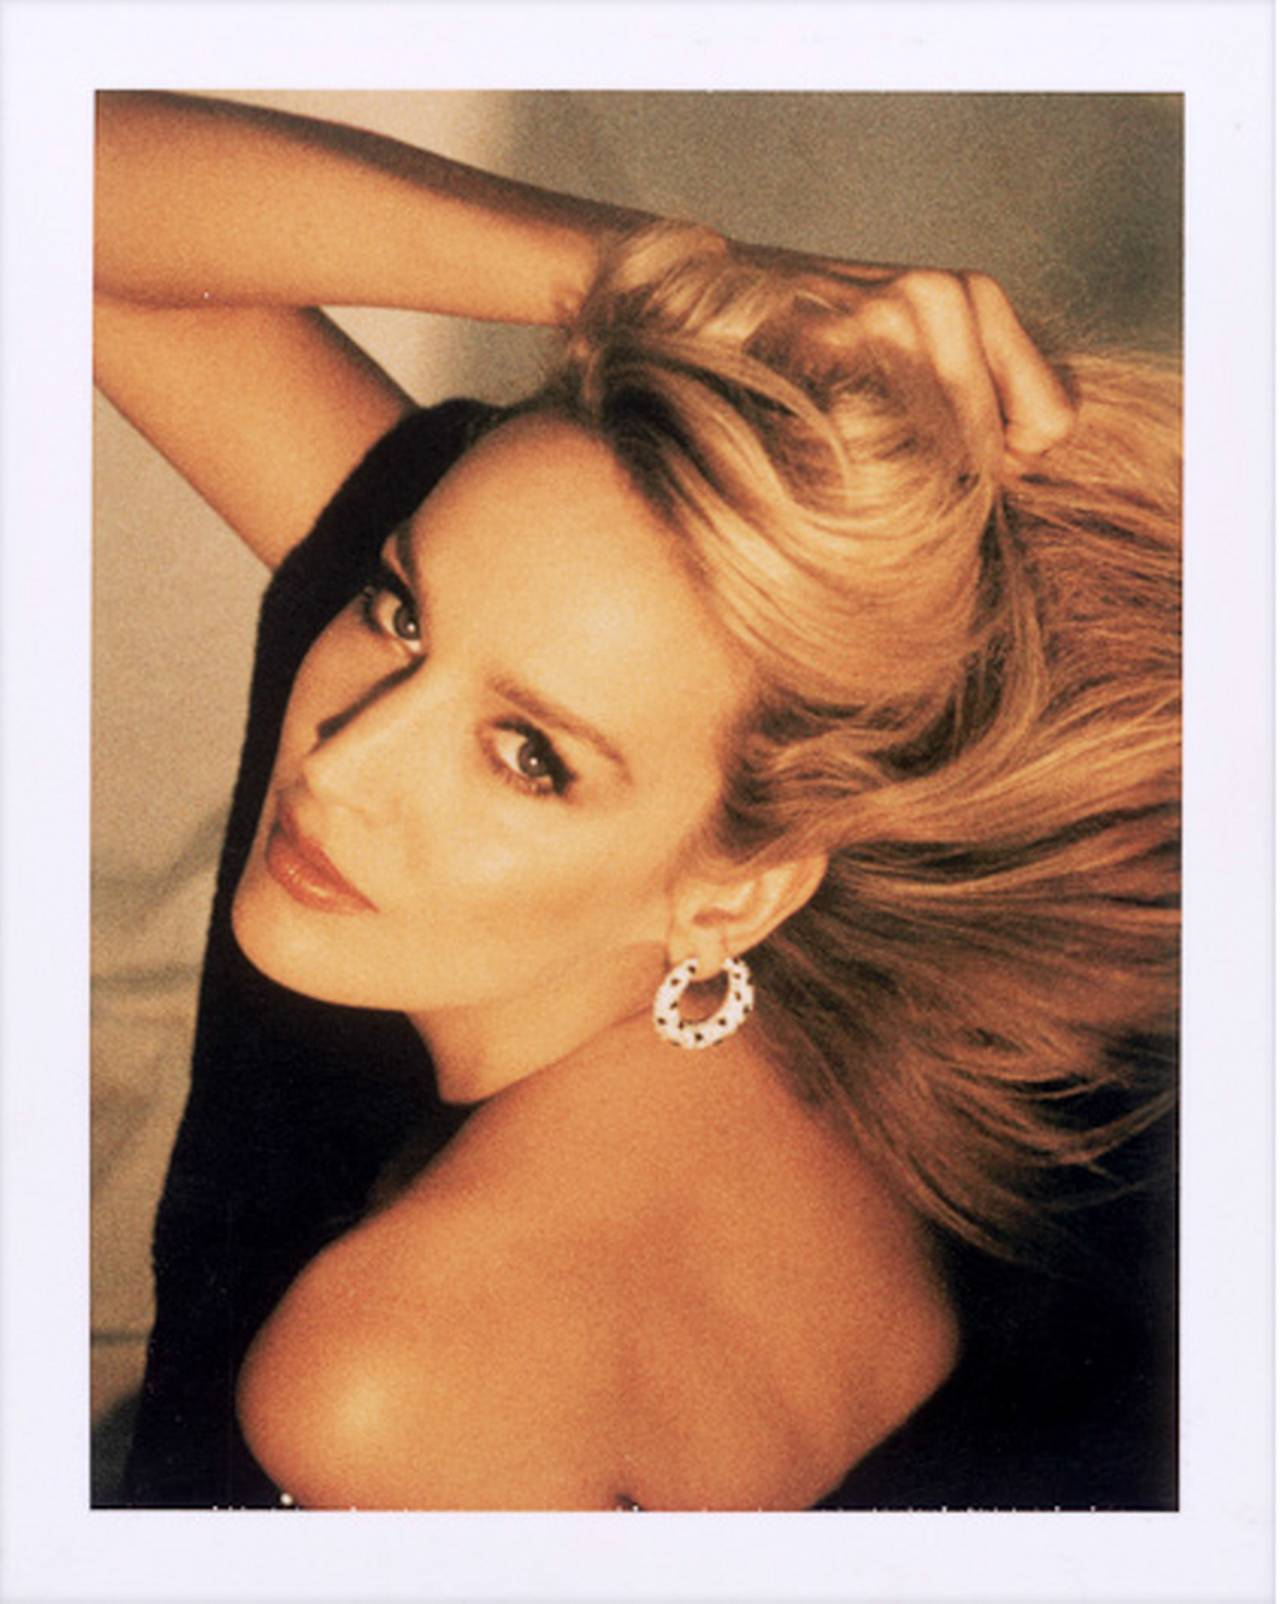 Bruno Bisang Color Photograph - Jerry Hall for Cartier II, Zurich